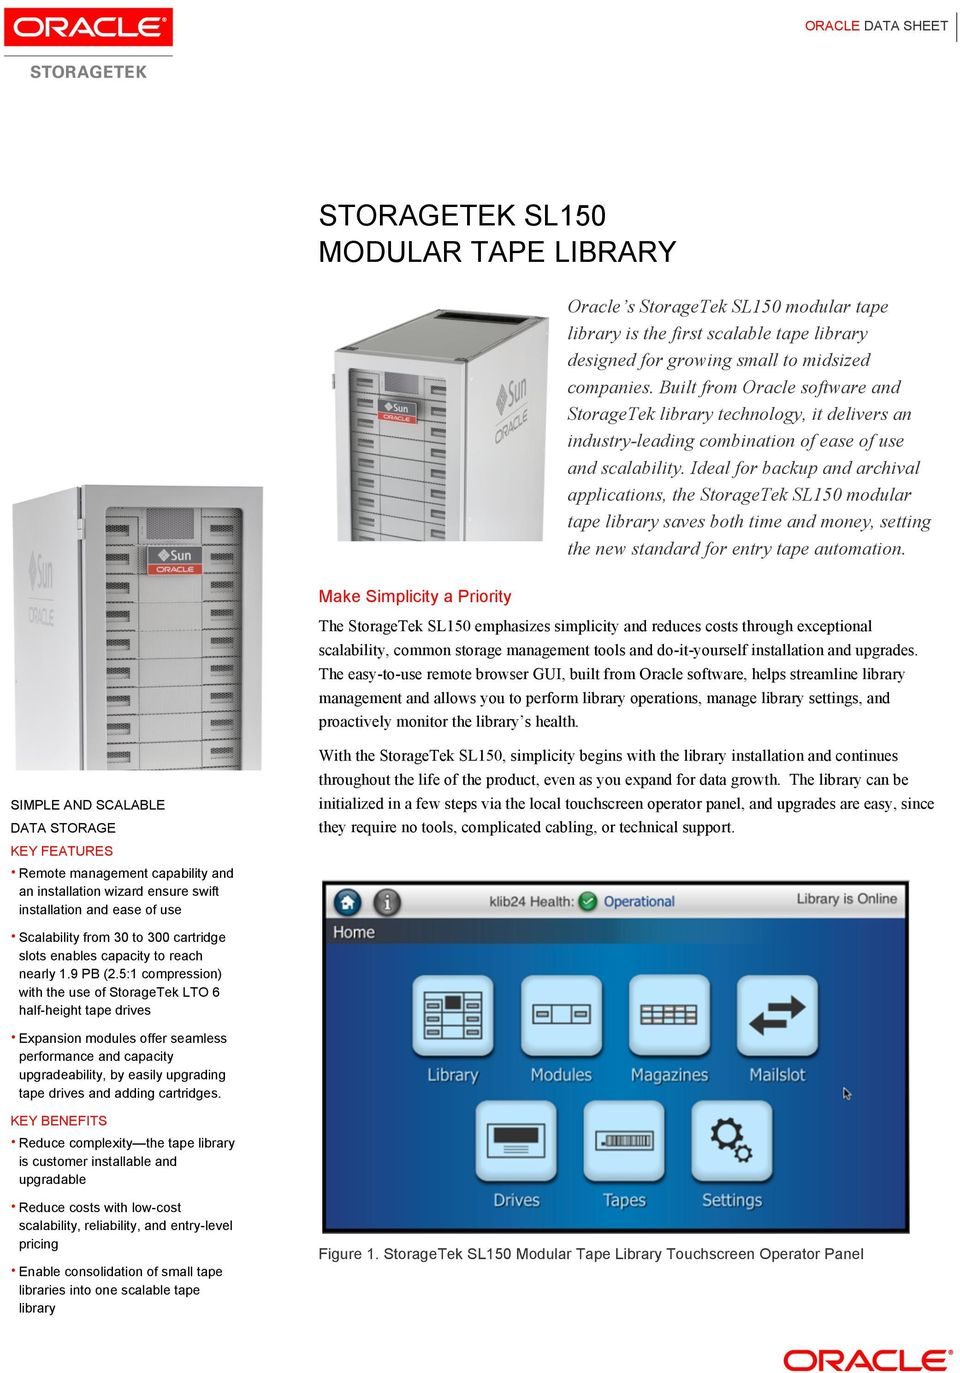 Ideal for backup and archival applications, the StorageTek SL150 modular tape library saves both time and money, setting the new standard for entry tape automation.